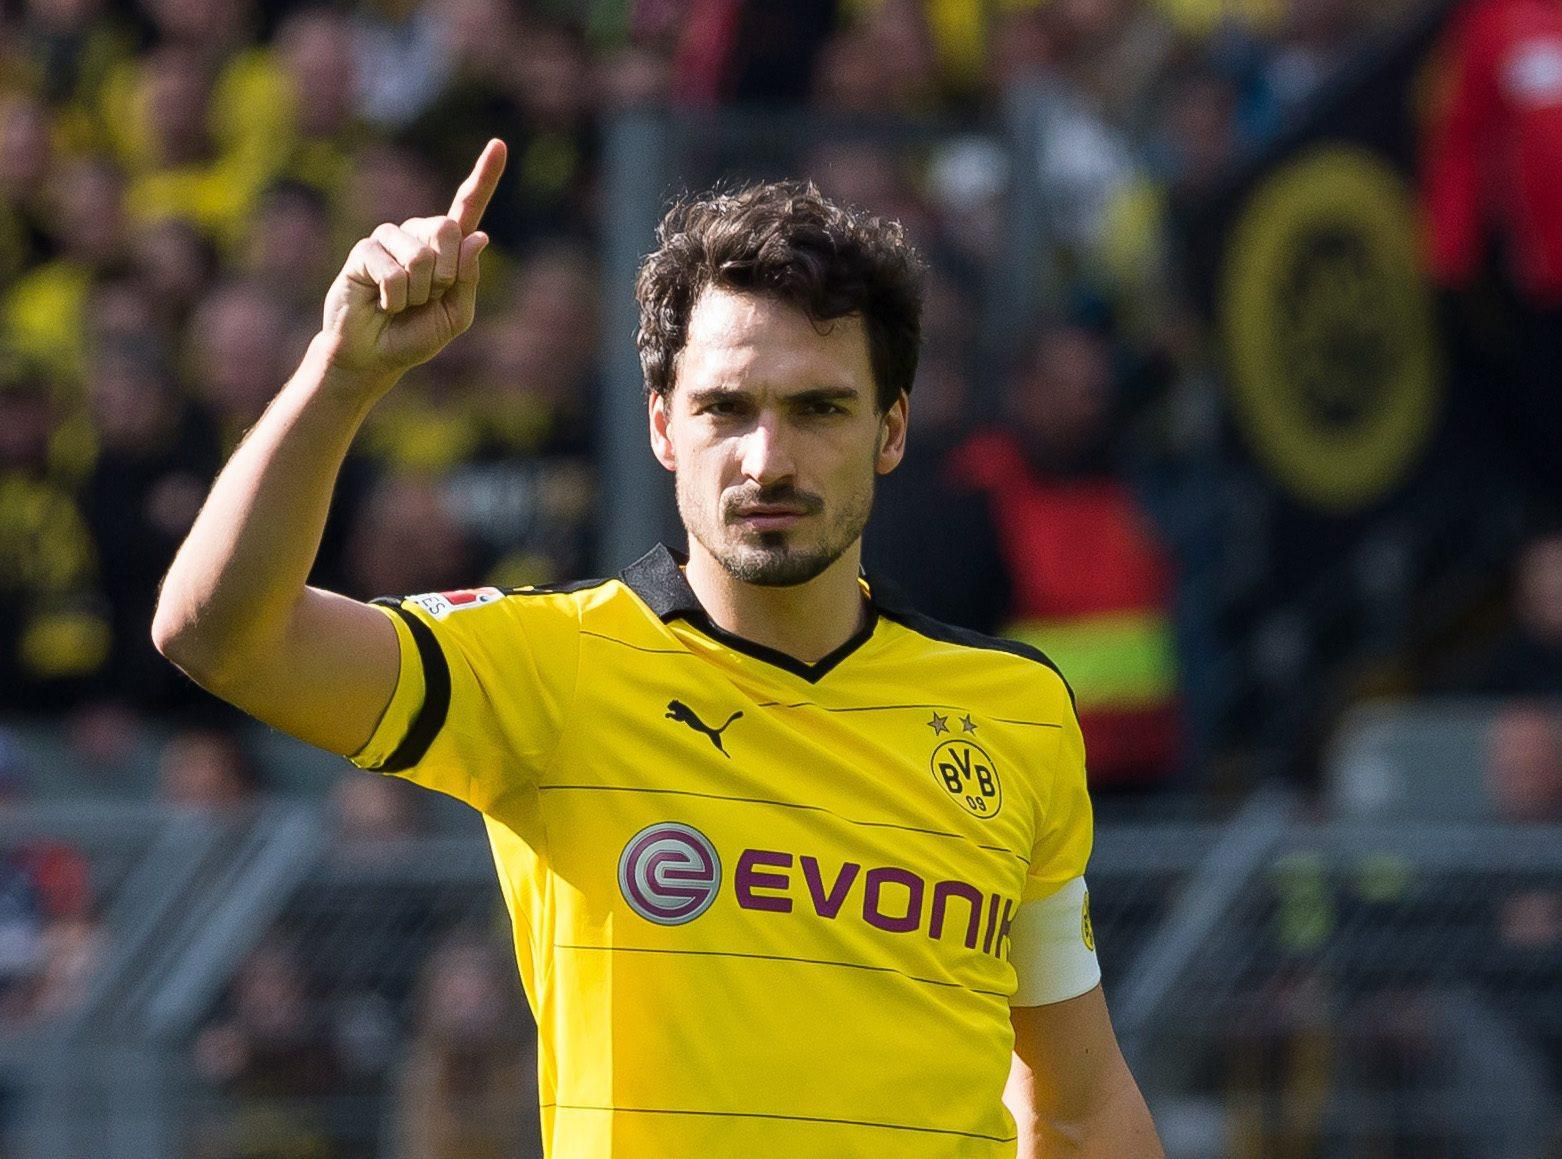 Hummels has won four league titles, two at Dortmund and two with Bayern